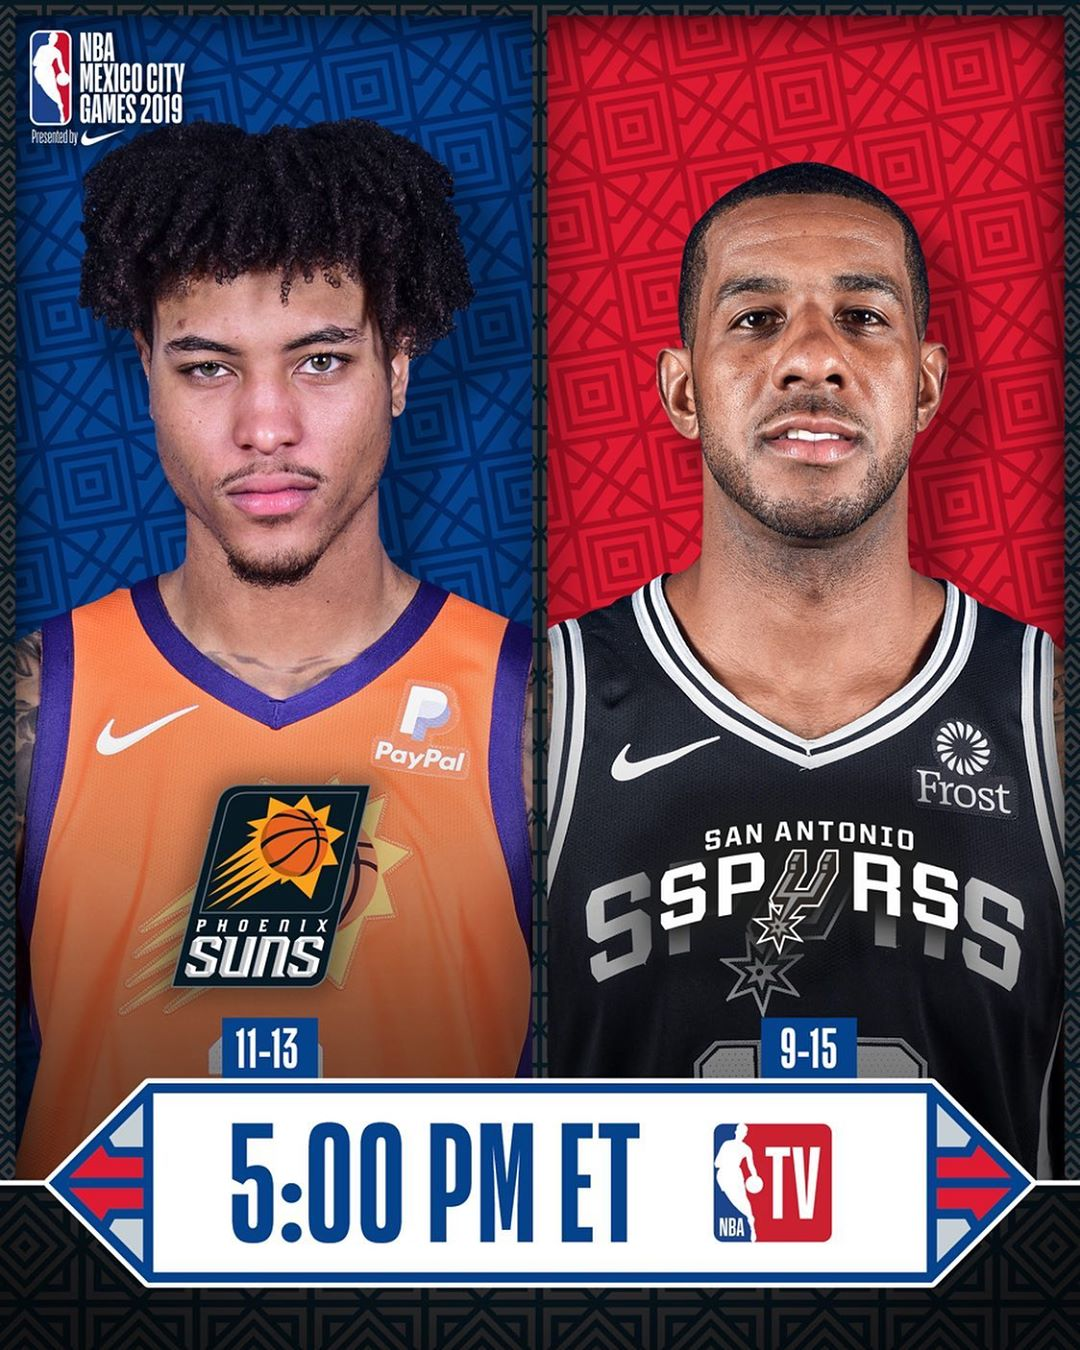 The  presented by Nike continues with  at 5:00pm/et on ...